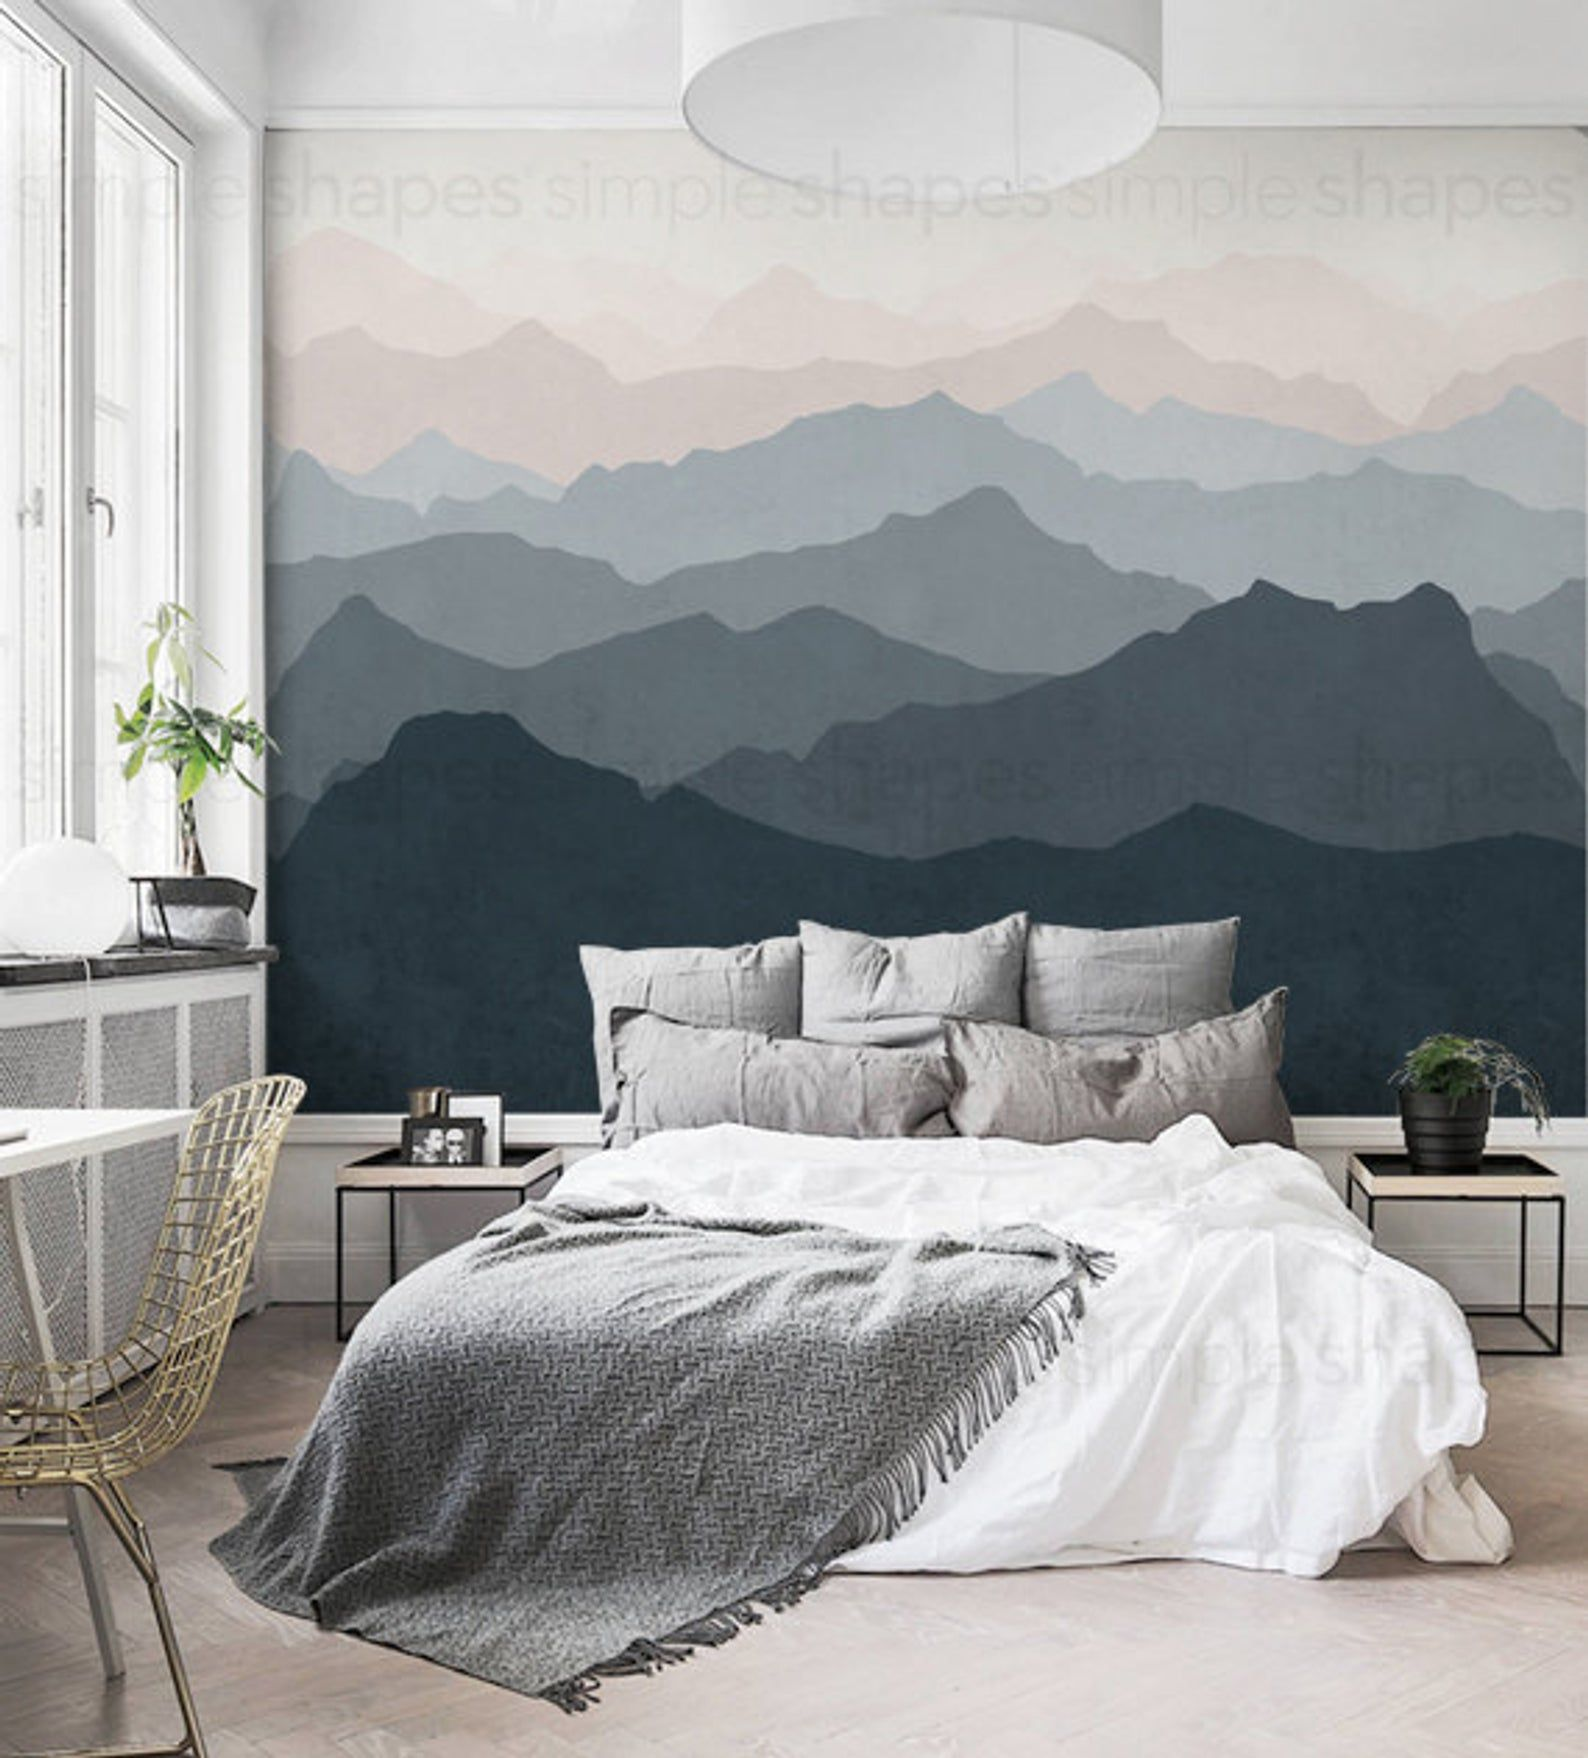 Mountain Mural Wallpaper Grayish Navy Pale Pink Mountain Extra Large Wall Art Peel And Stick Wall Mural Bedroom Wall Wall Decor Bedroom Mountain Mural